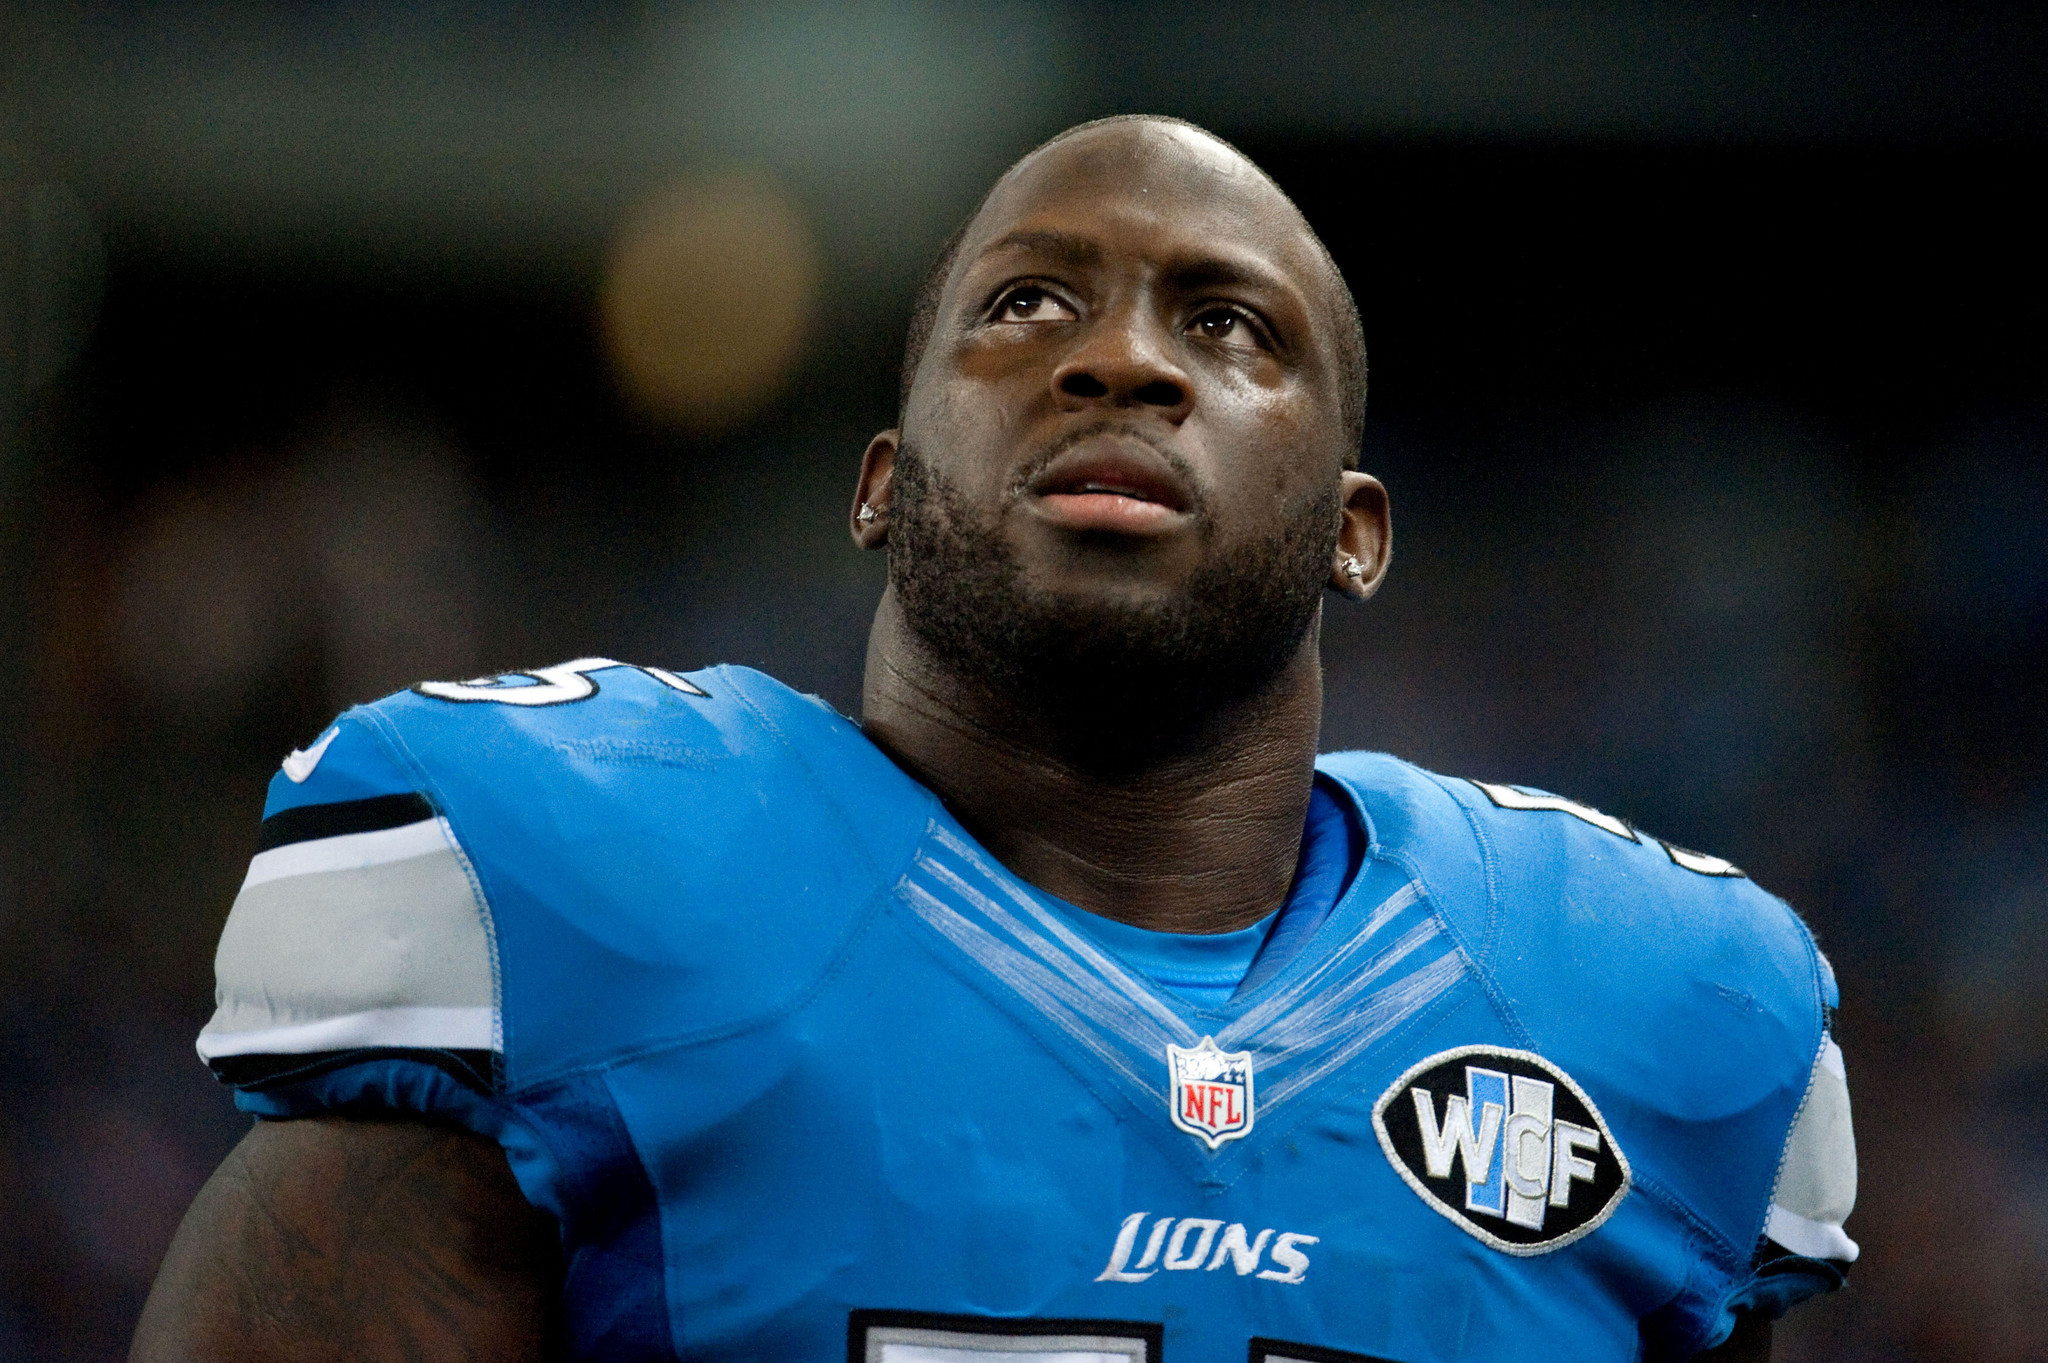 Lions' Stephen Tulloch suffers torn ACL during sack celebration